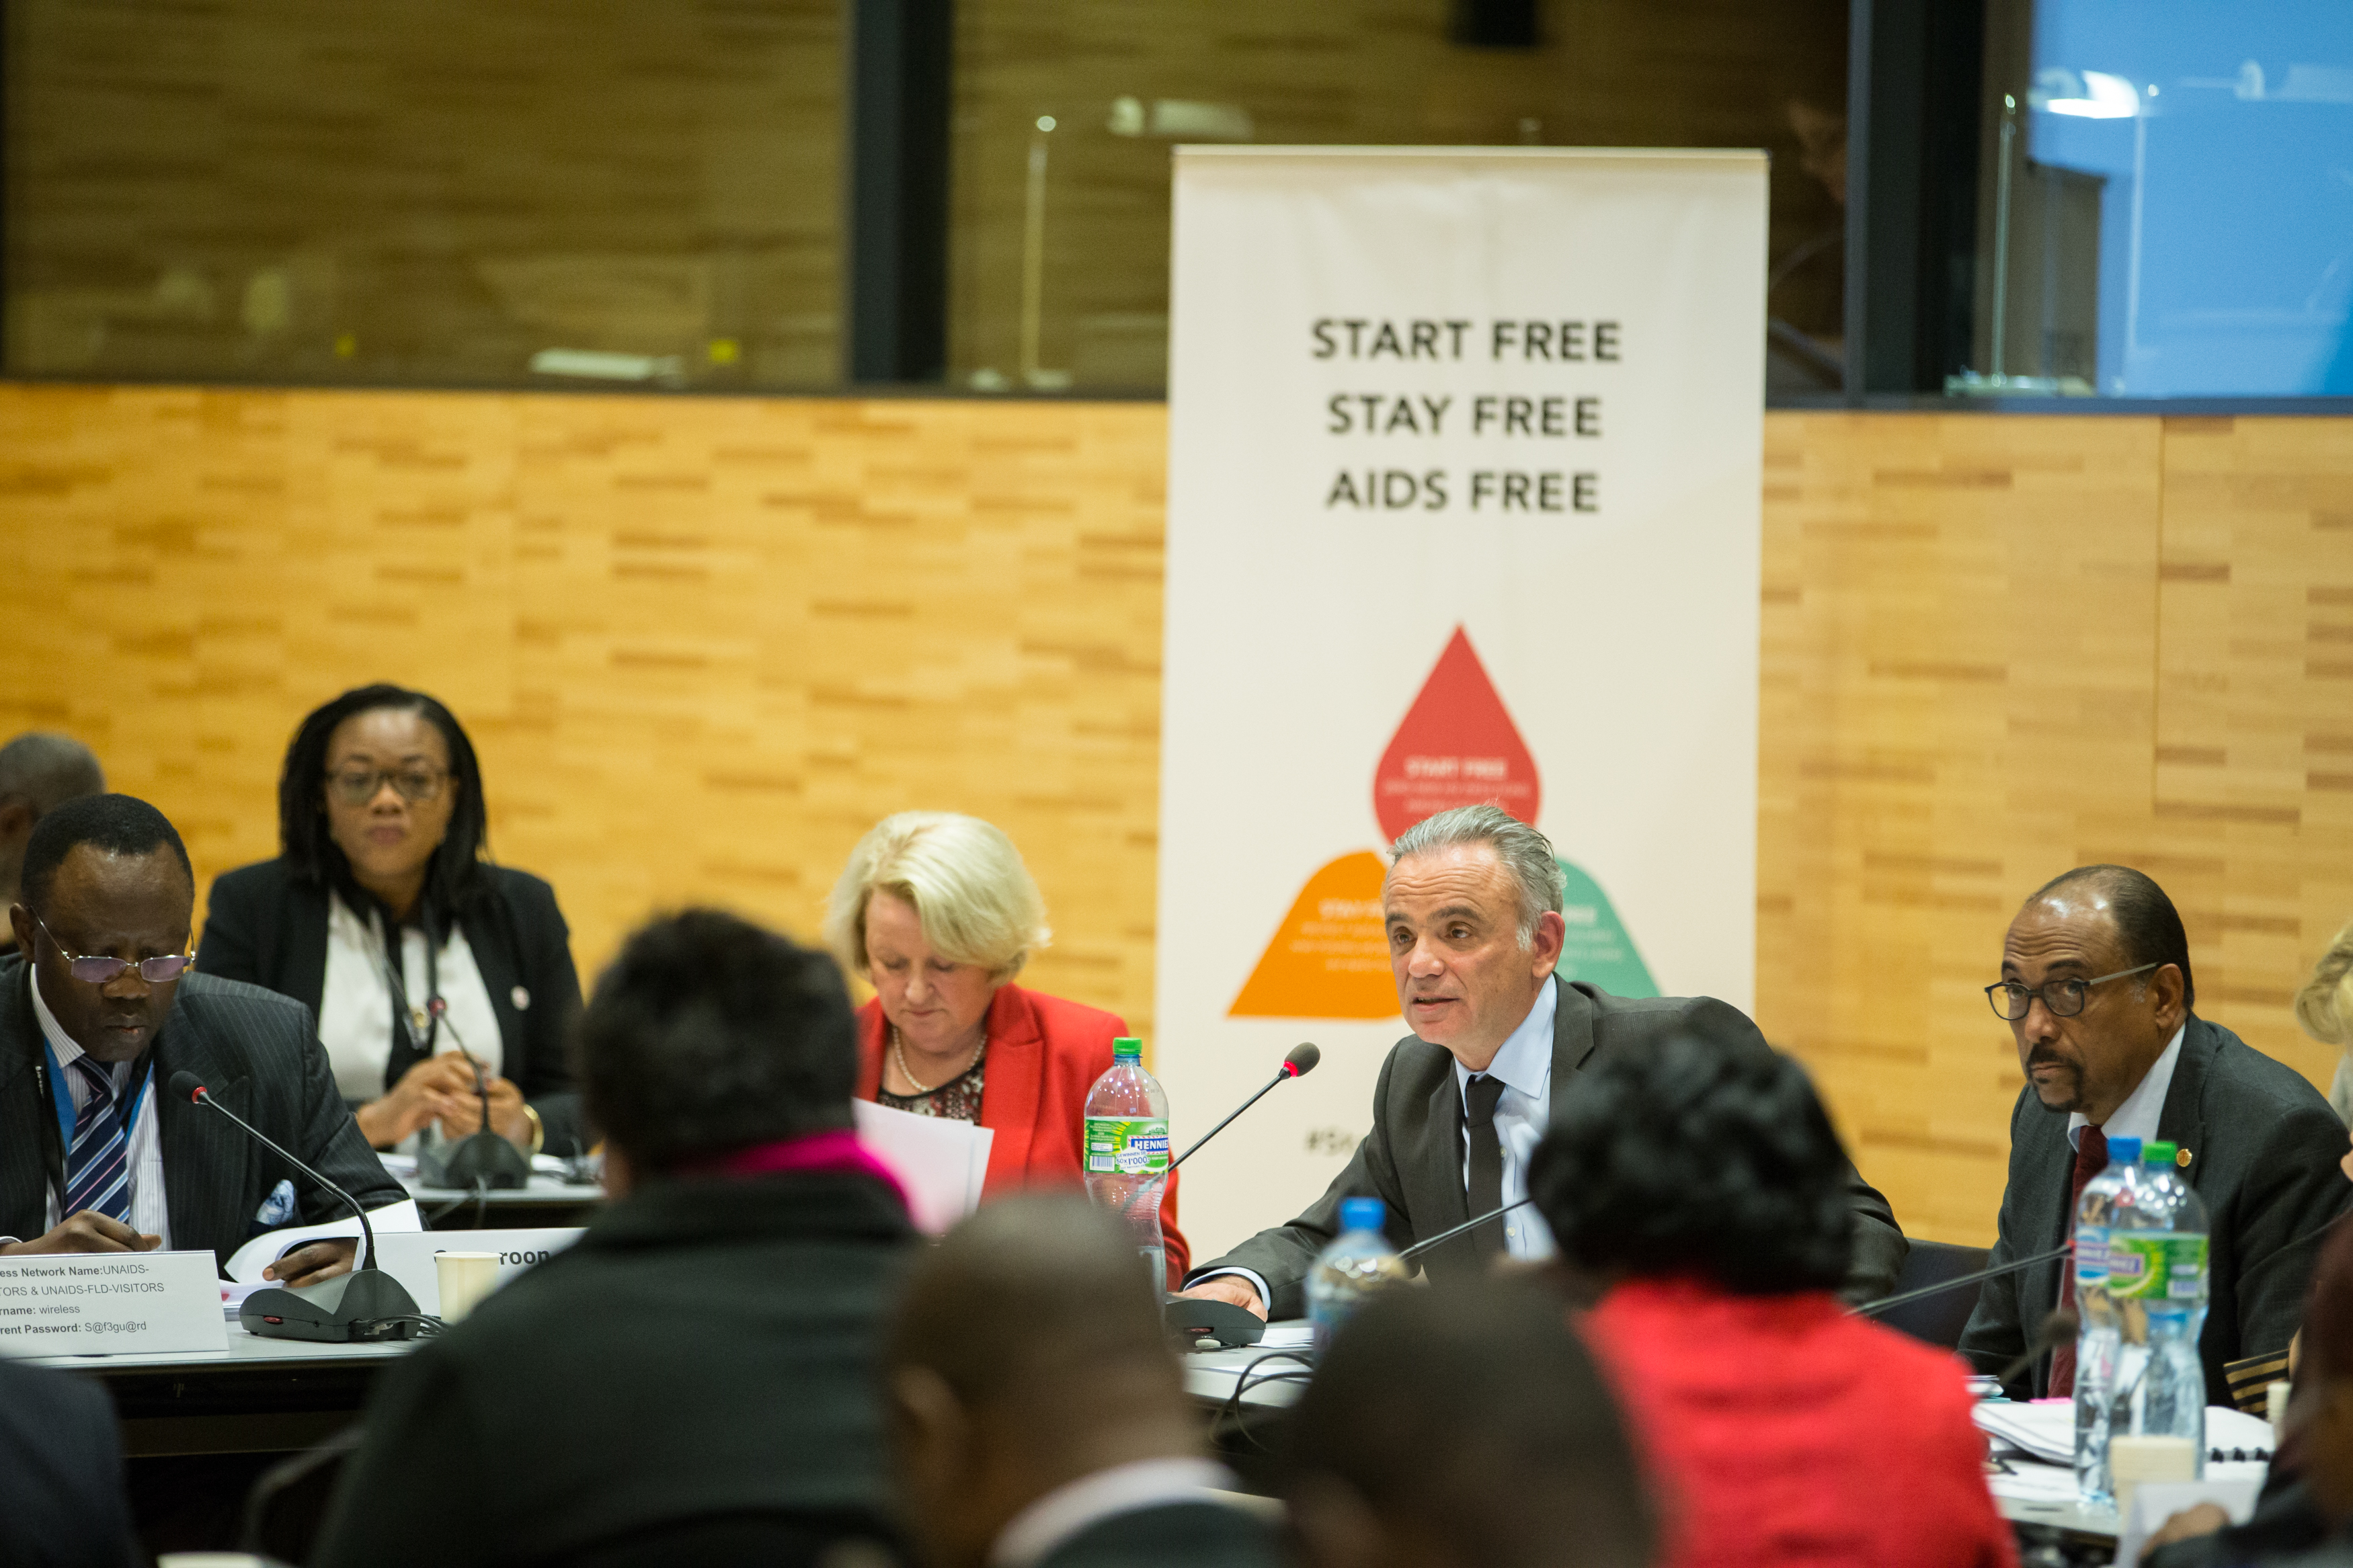 Start Free Stay Free AIDS Free, High-level Ministerial Dialogue, 5 December 2016, UNAIDS Headquarters, Geneva, Switzerland. ©UNAIDS/Pierre Albouy